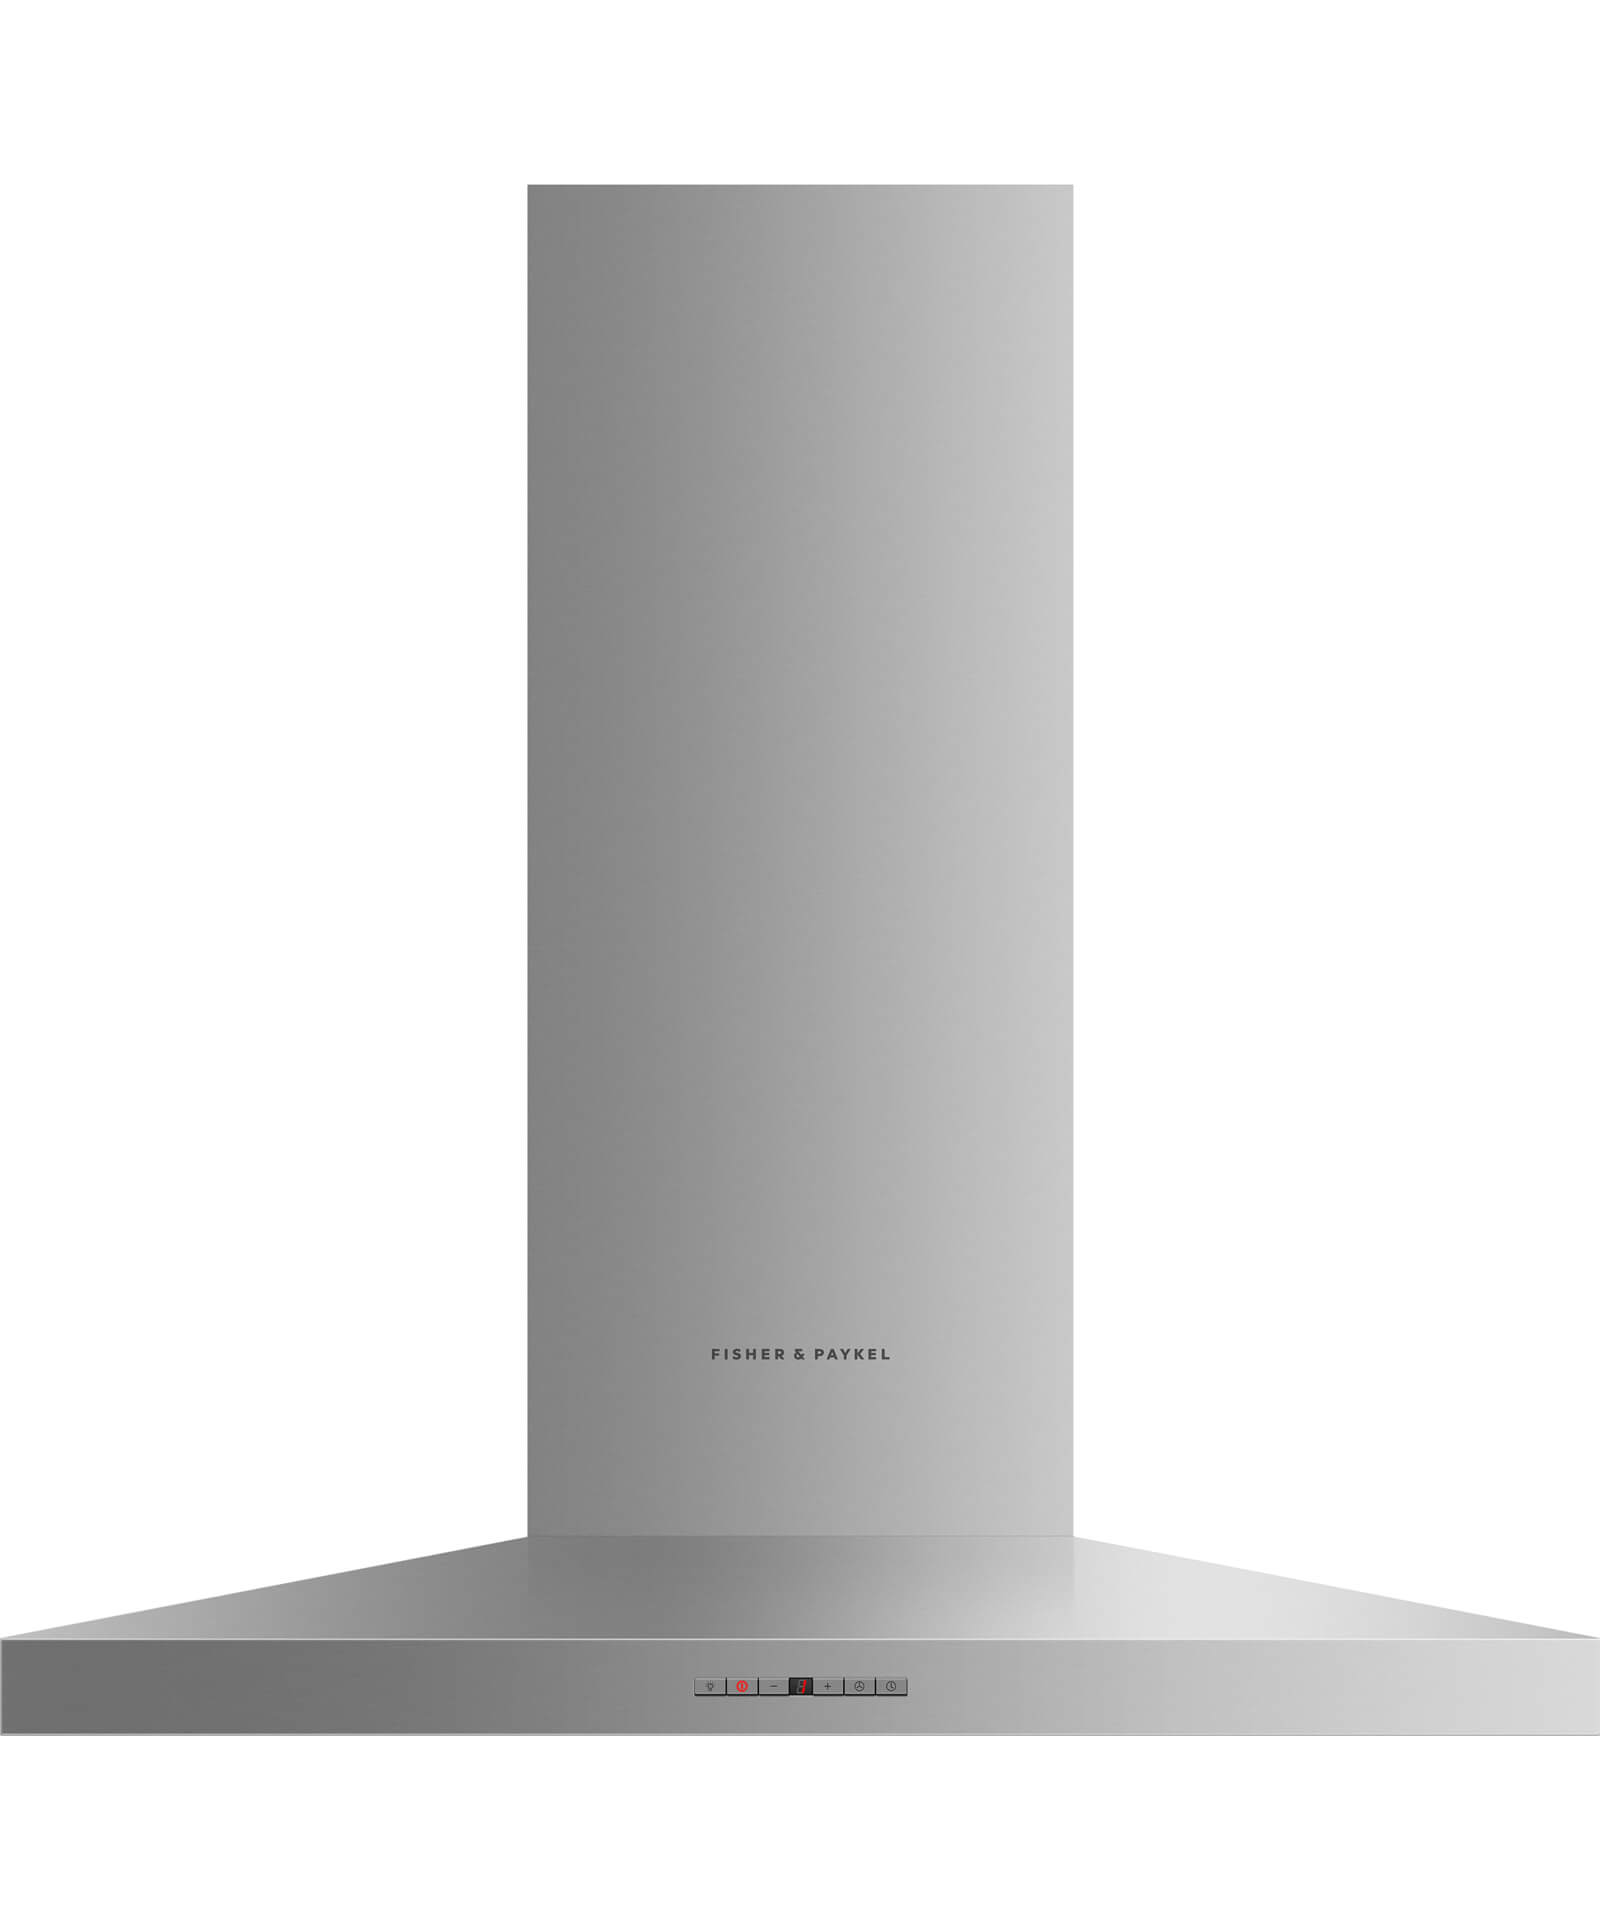 "Fisher and Paykel Wall Chimney Vent Hood, 36"", Pyramid"